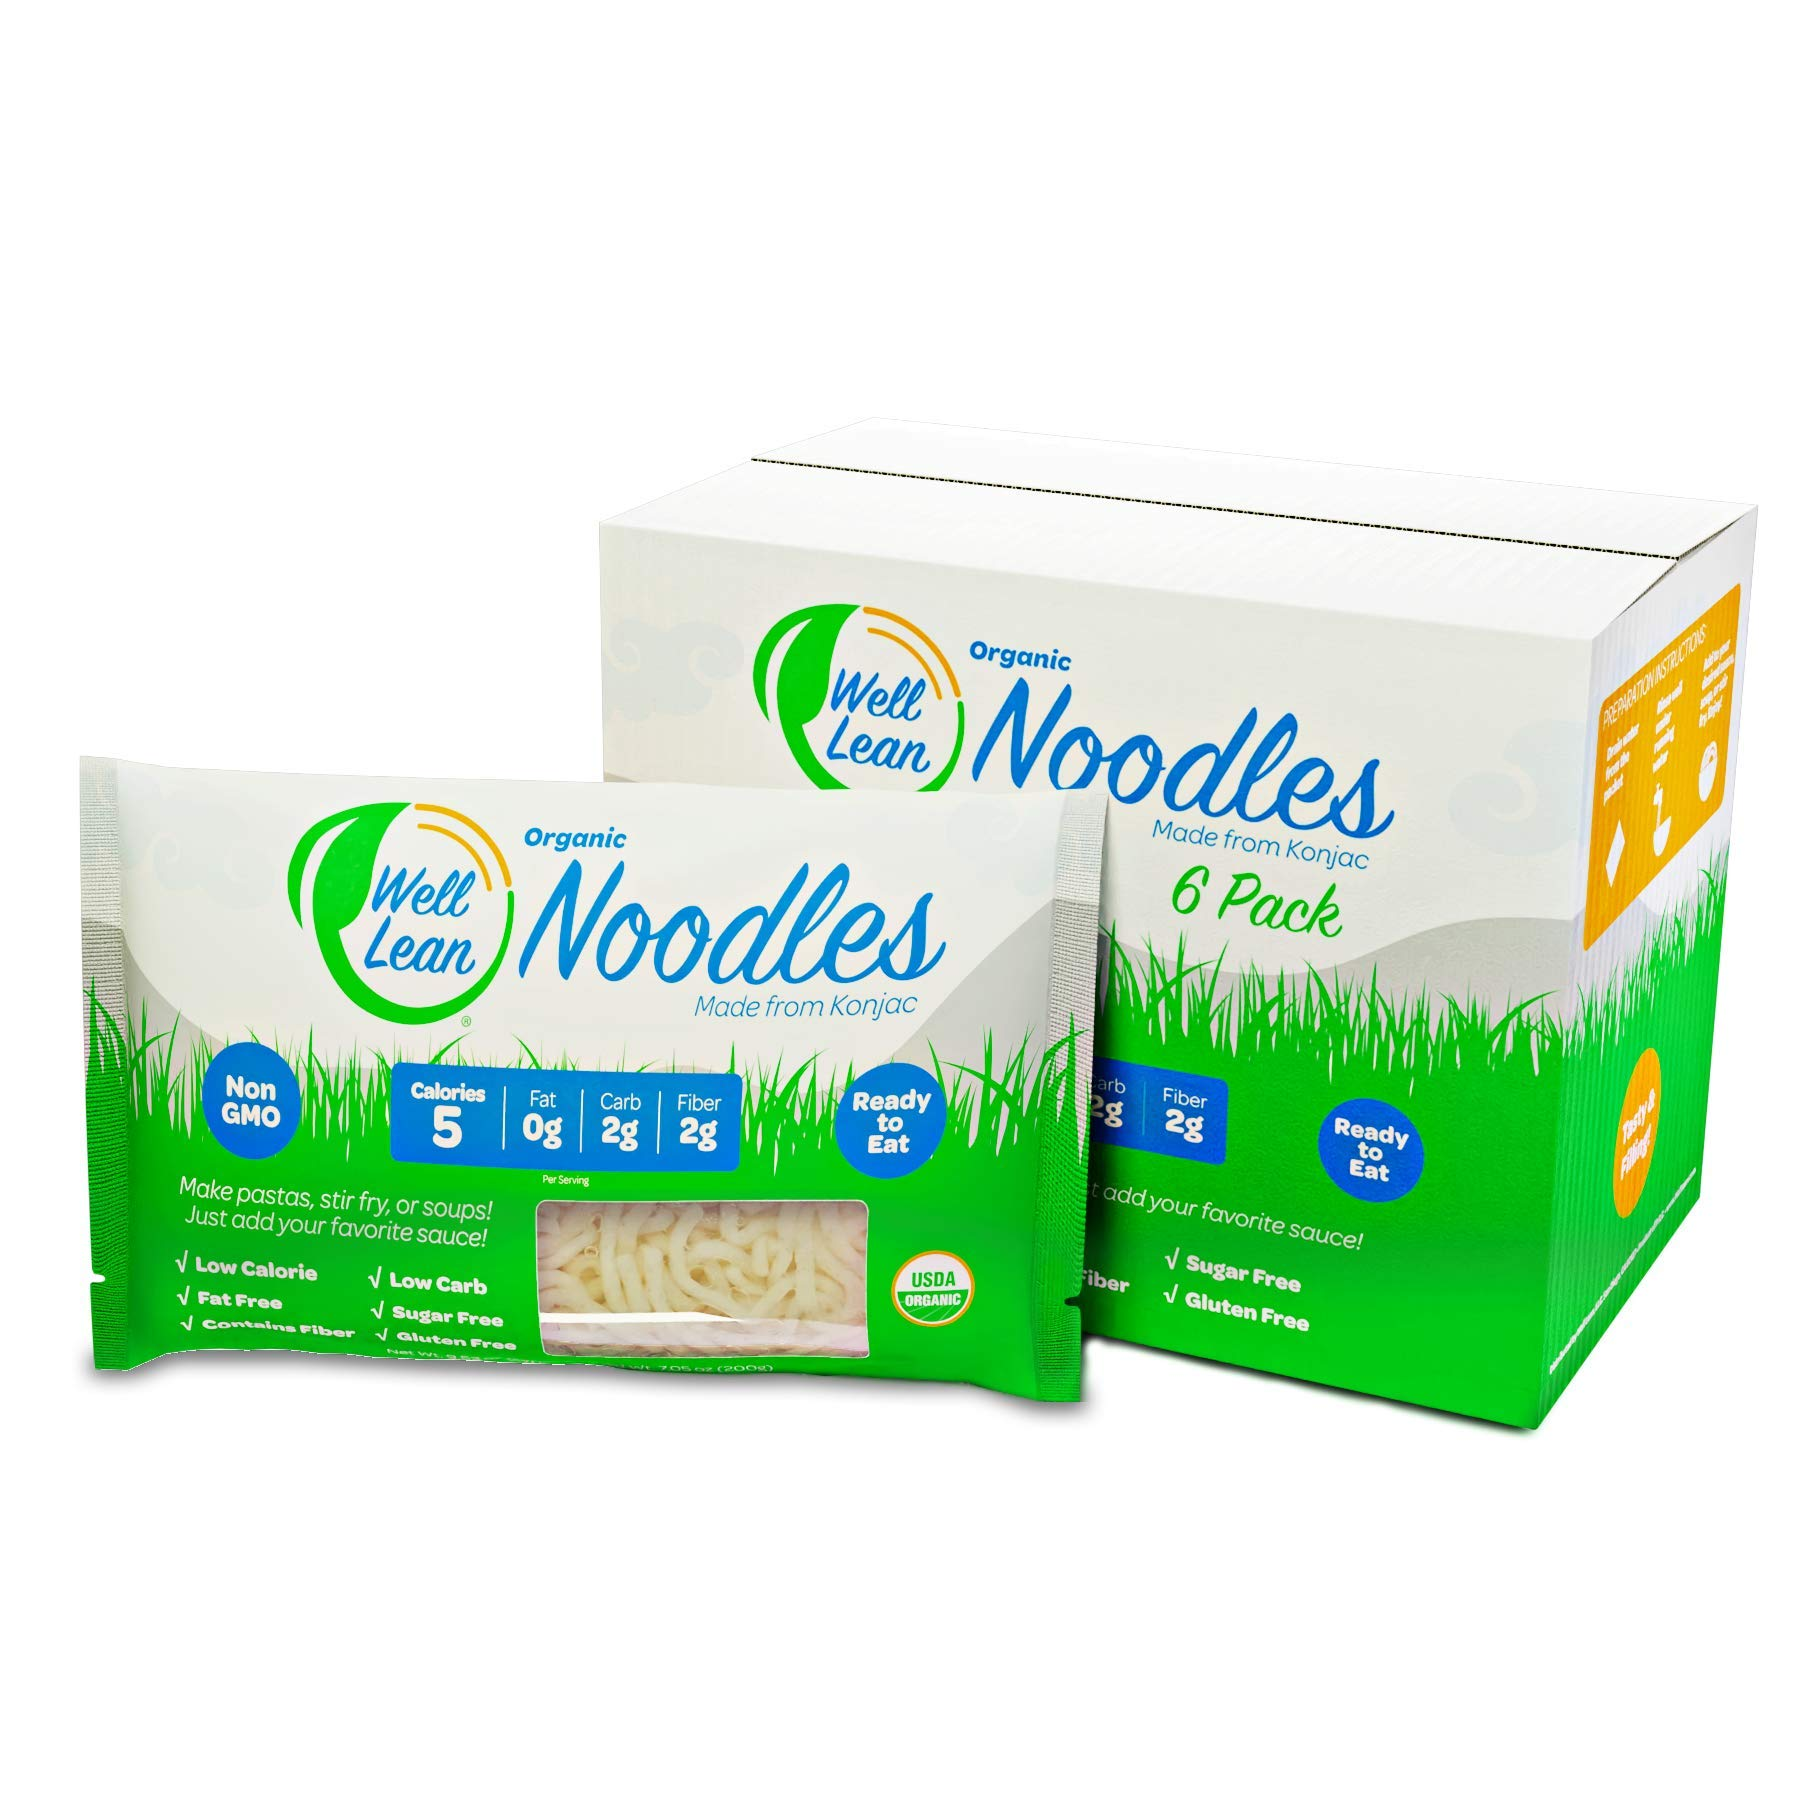 Organic Well Lean Noodles, Premium Shirataki Konjac Pasta, Non Gmo and Ready to Eat, Low Calorie and Low Carb